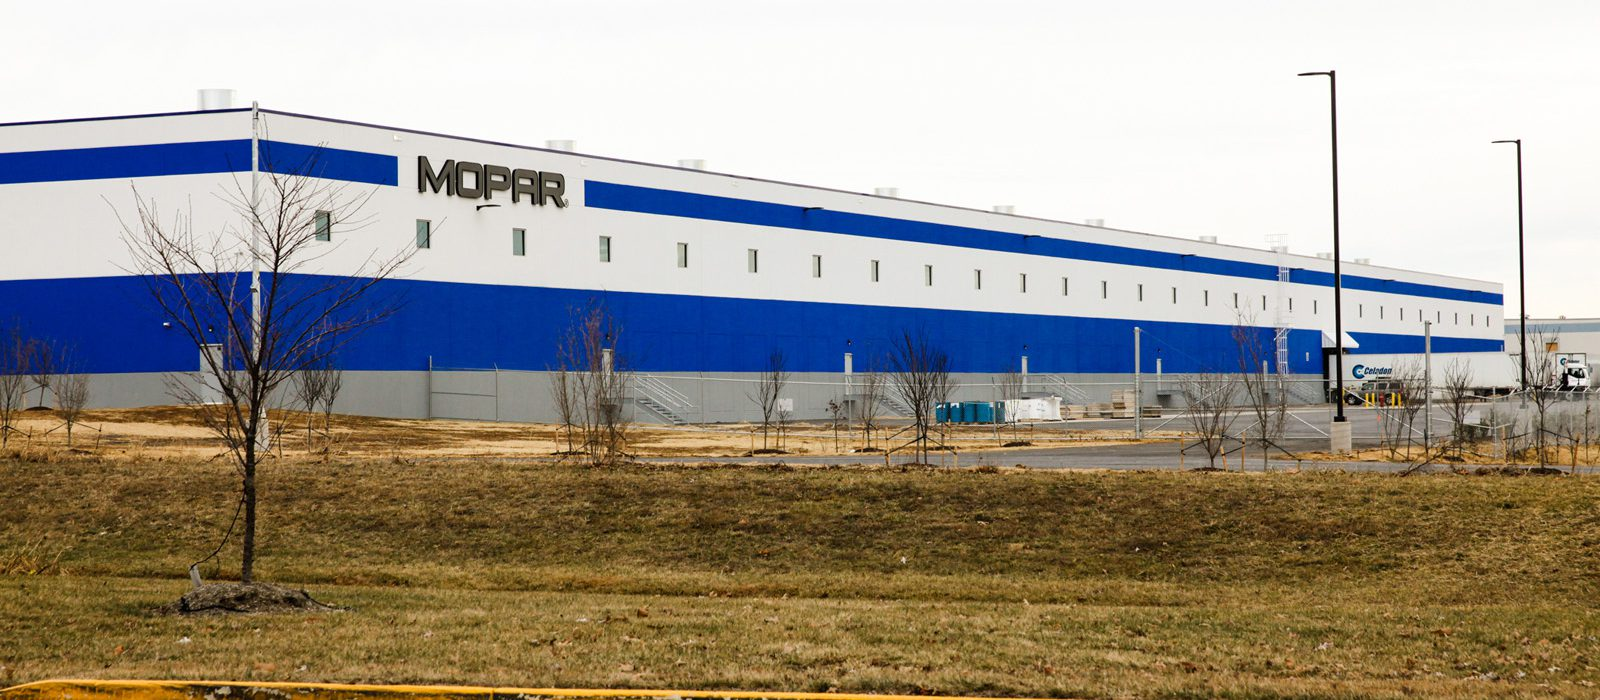 Stonewall Industrial Park Phase 2 Mopar exterior signage